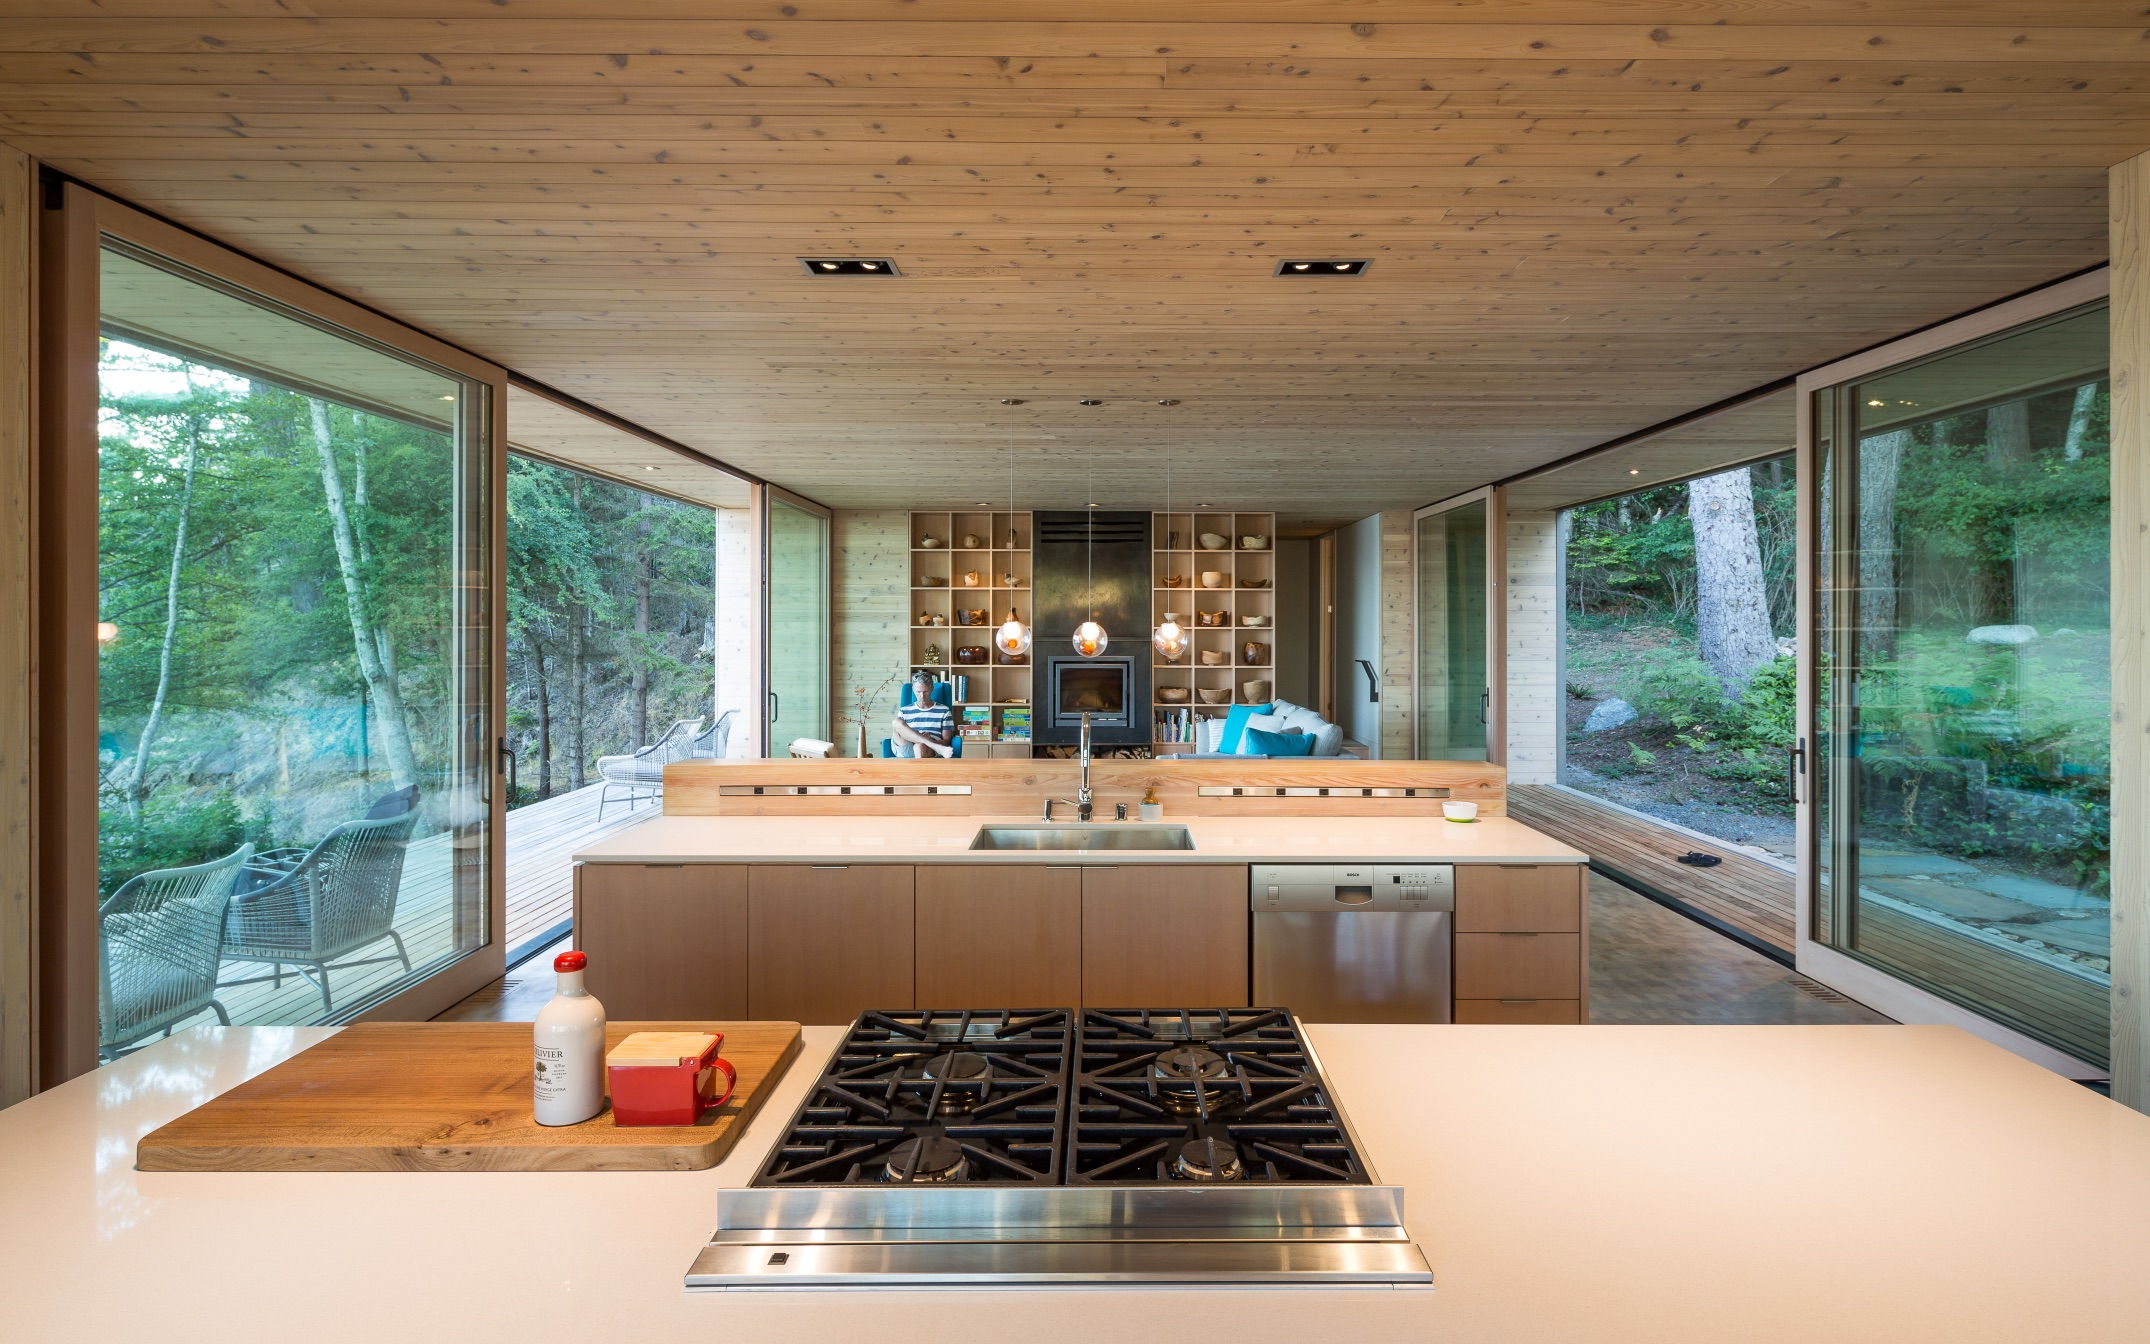 5_Lone Madrone_Heliotrope Architects_Inspirationist